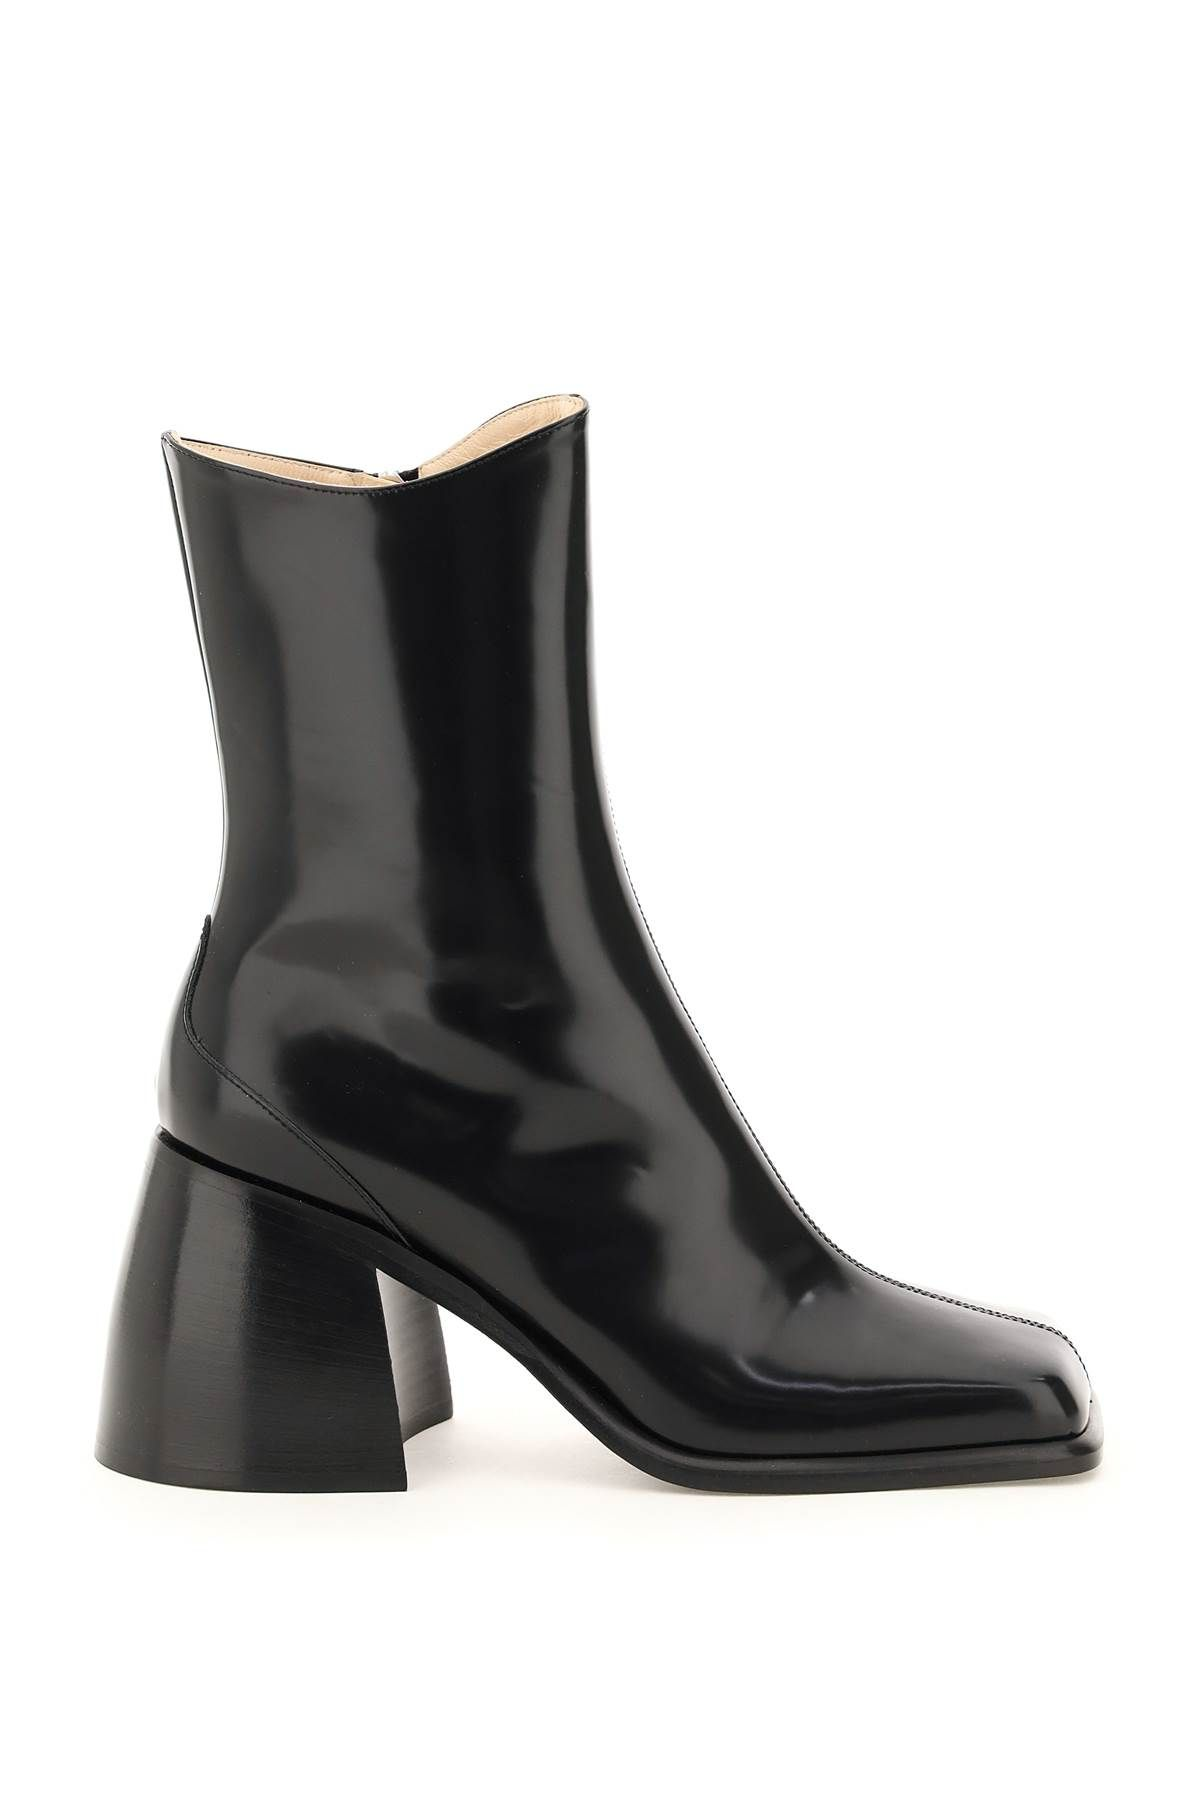 wandler shoes women brushed leather ella ankle boots